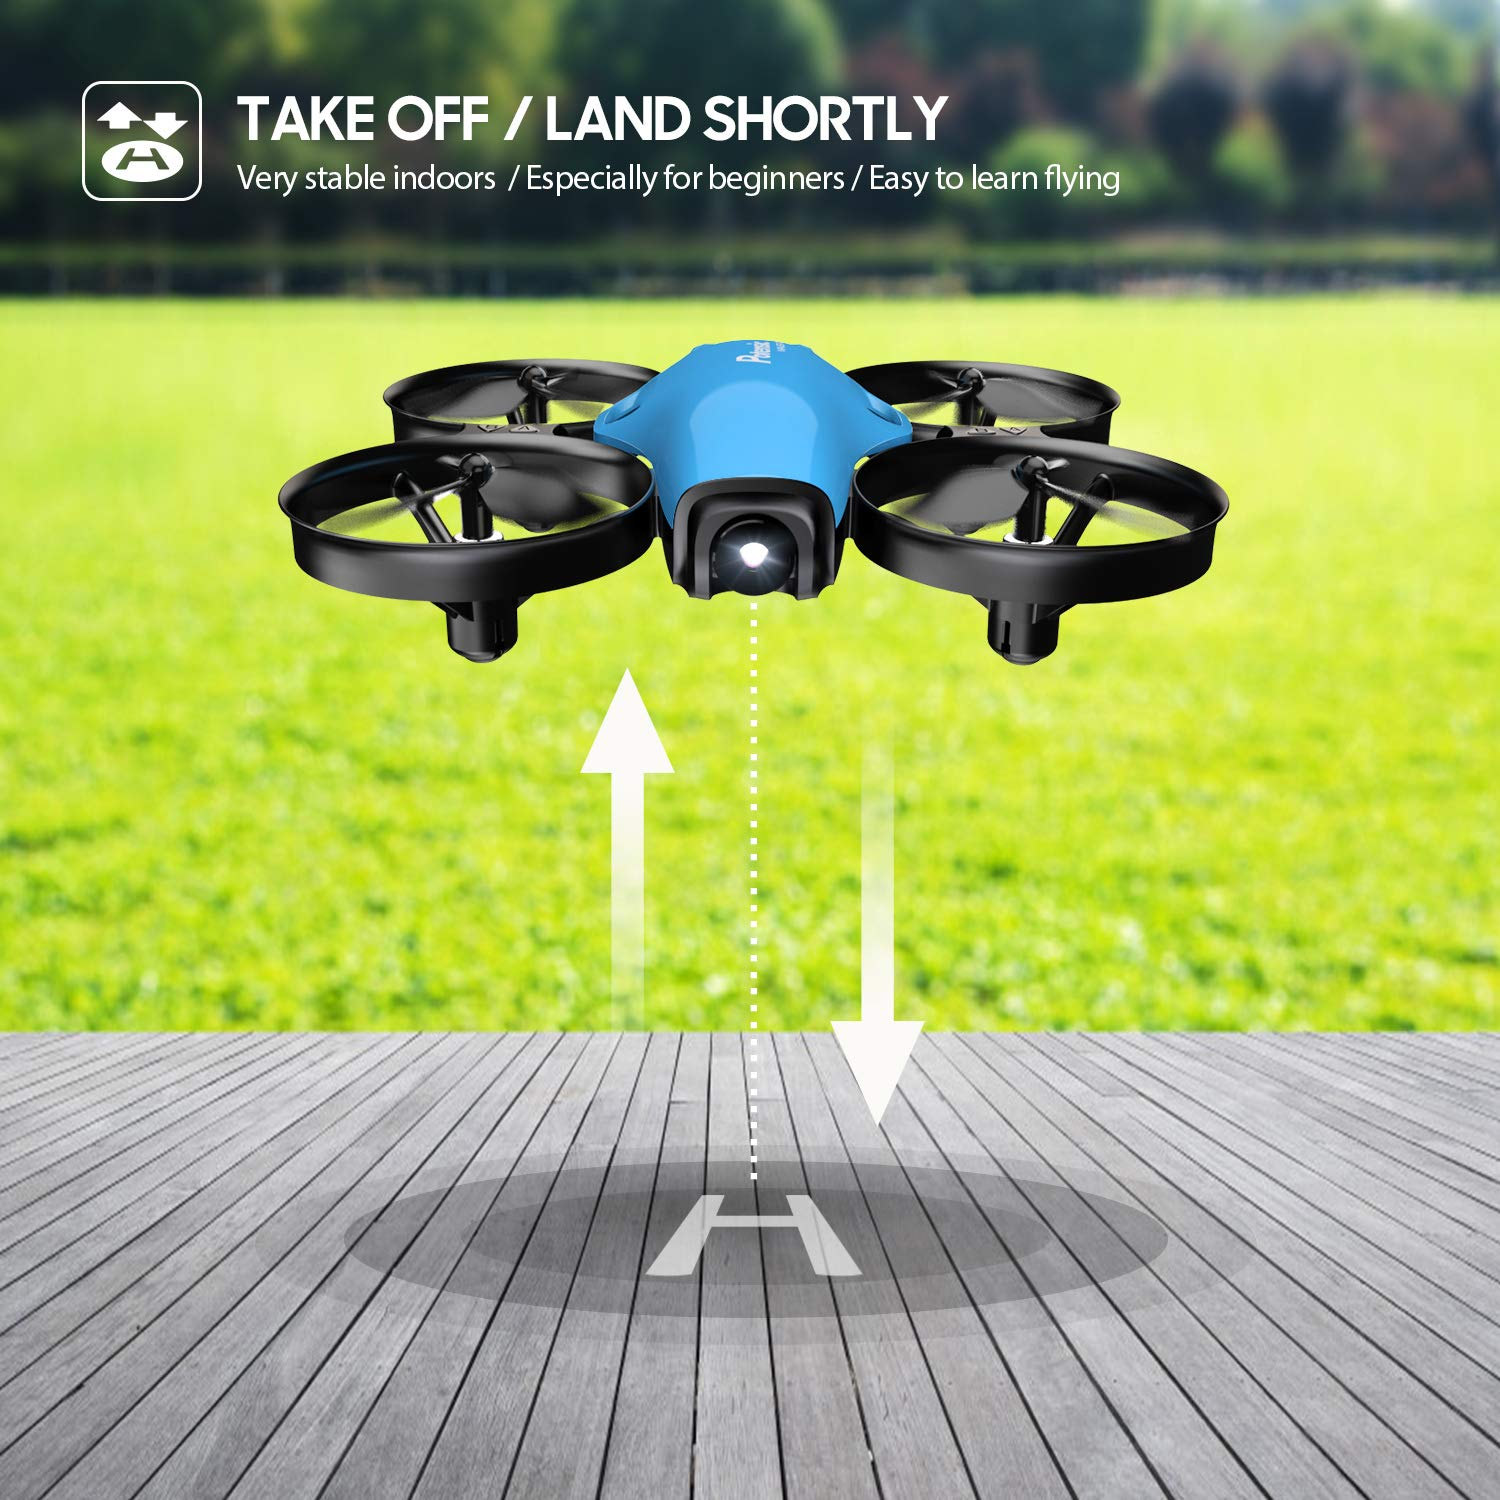 Mini Drone, RC Quadcopter, Potensic A30 One Key Take-Off/Land,Emergency Stopped, Altitude Hold,Auto Hovering,Drone for Kids (Blue) by Potensic (Image #2)